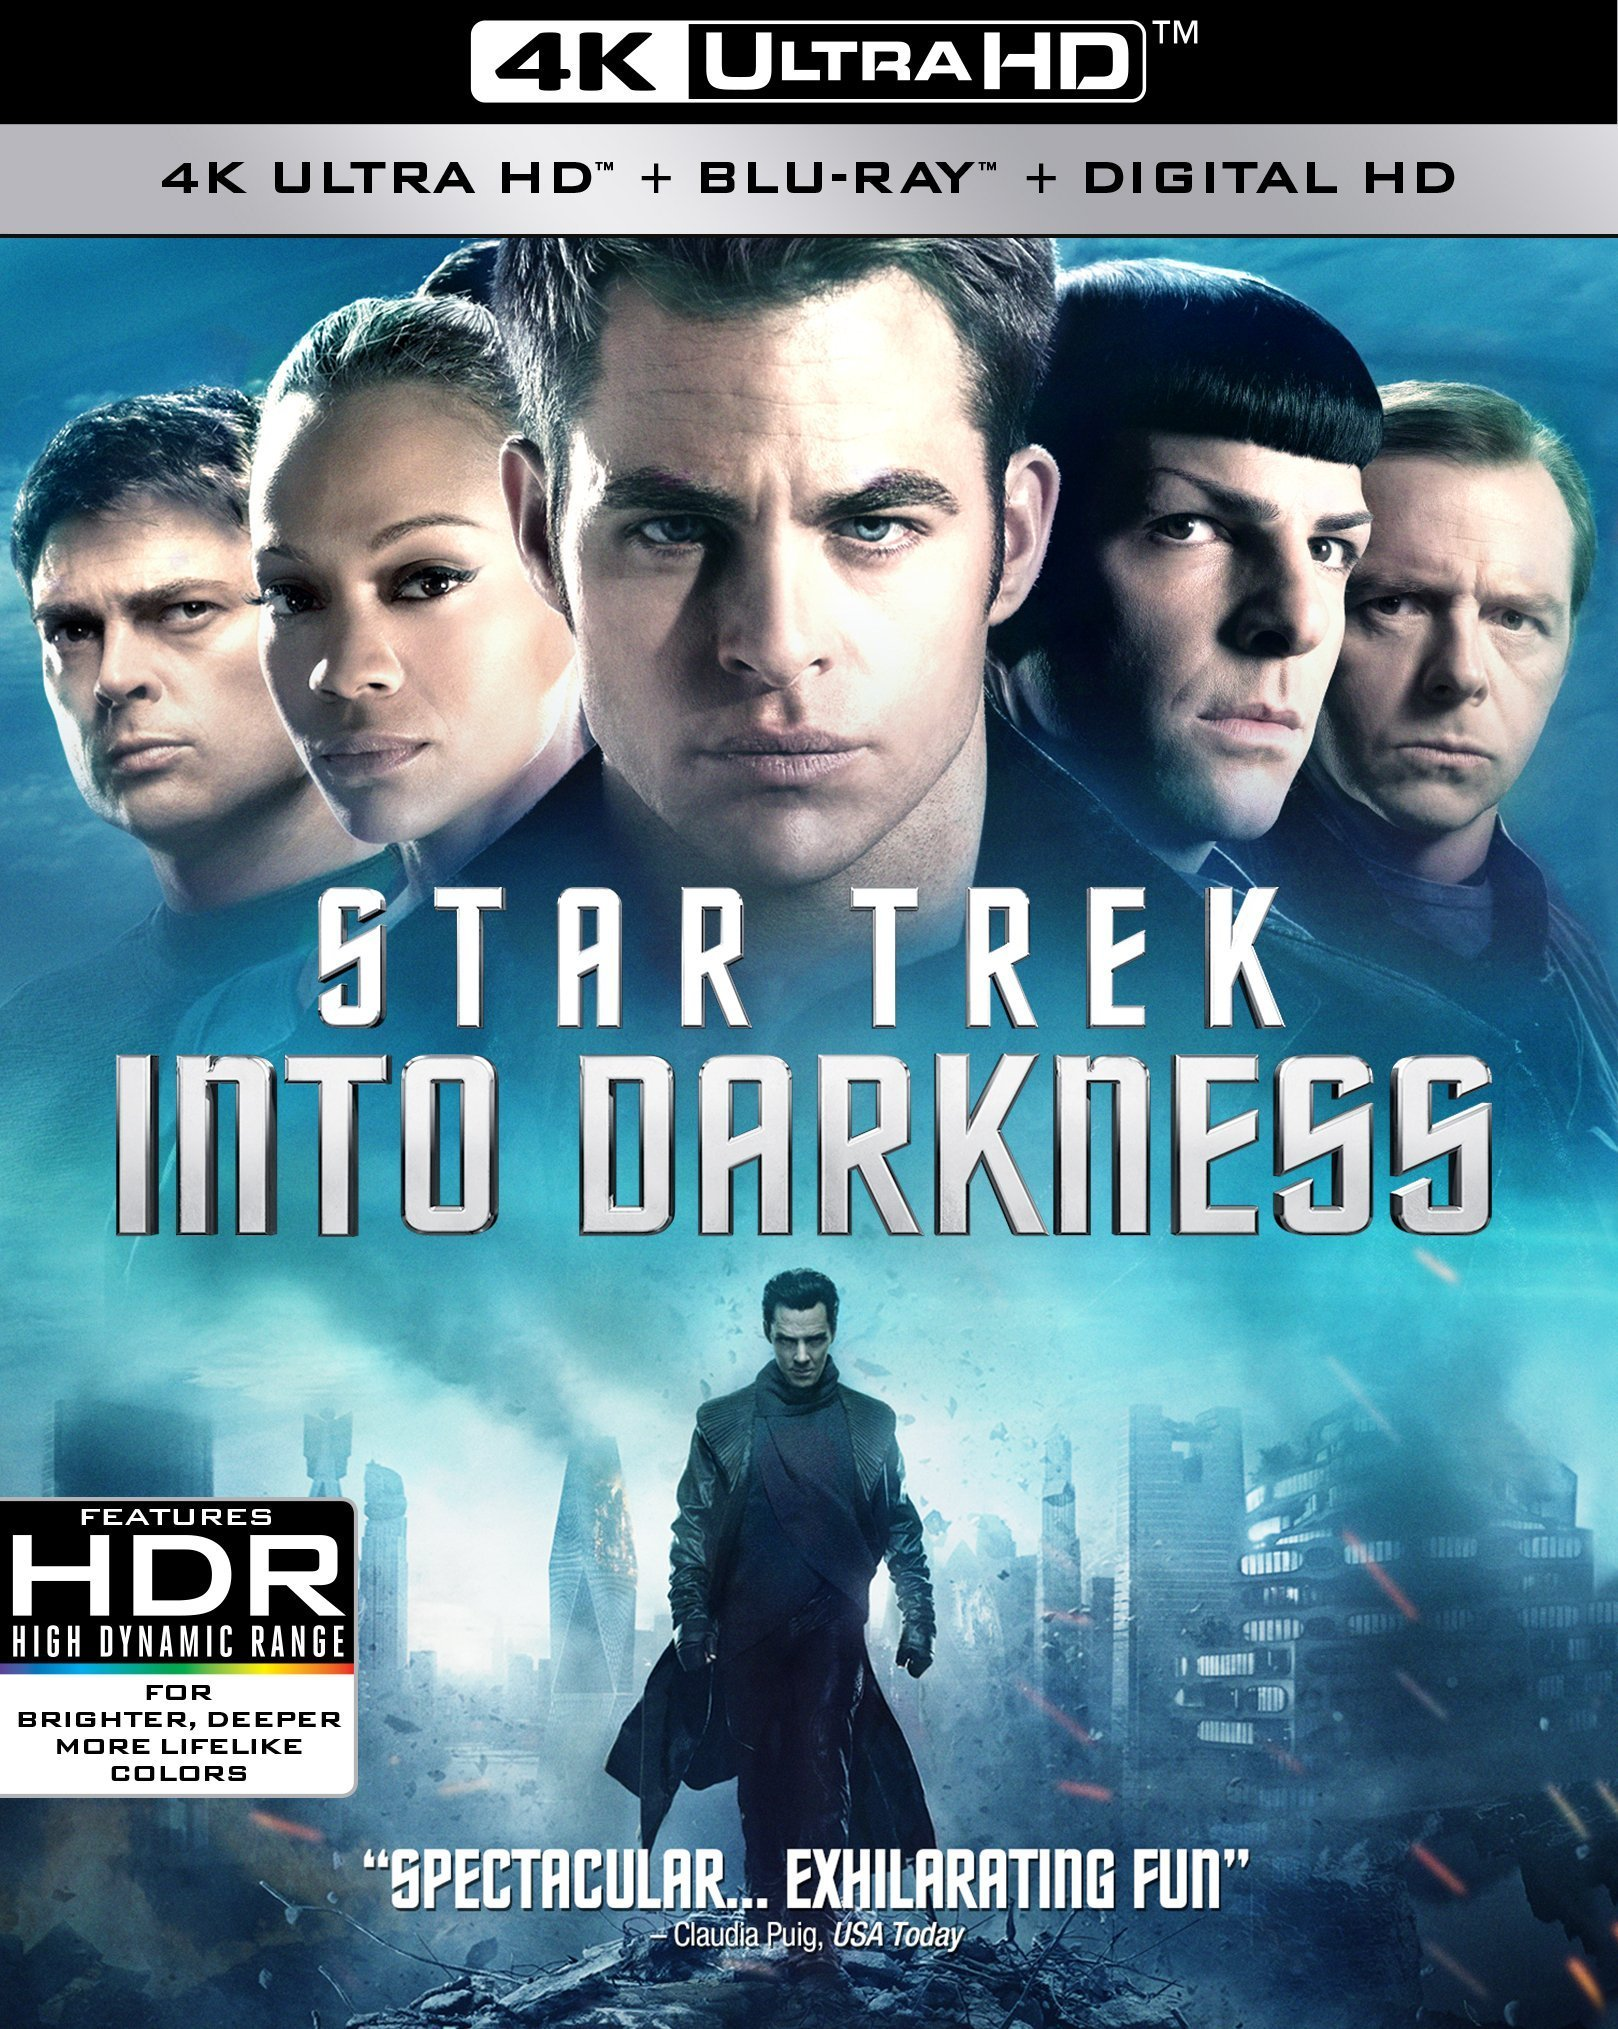 Star Trek Into Darkness (2013) 4K Ultra HD Blu-ray